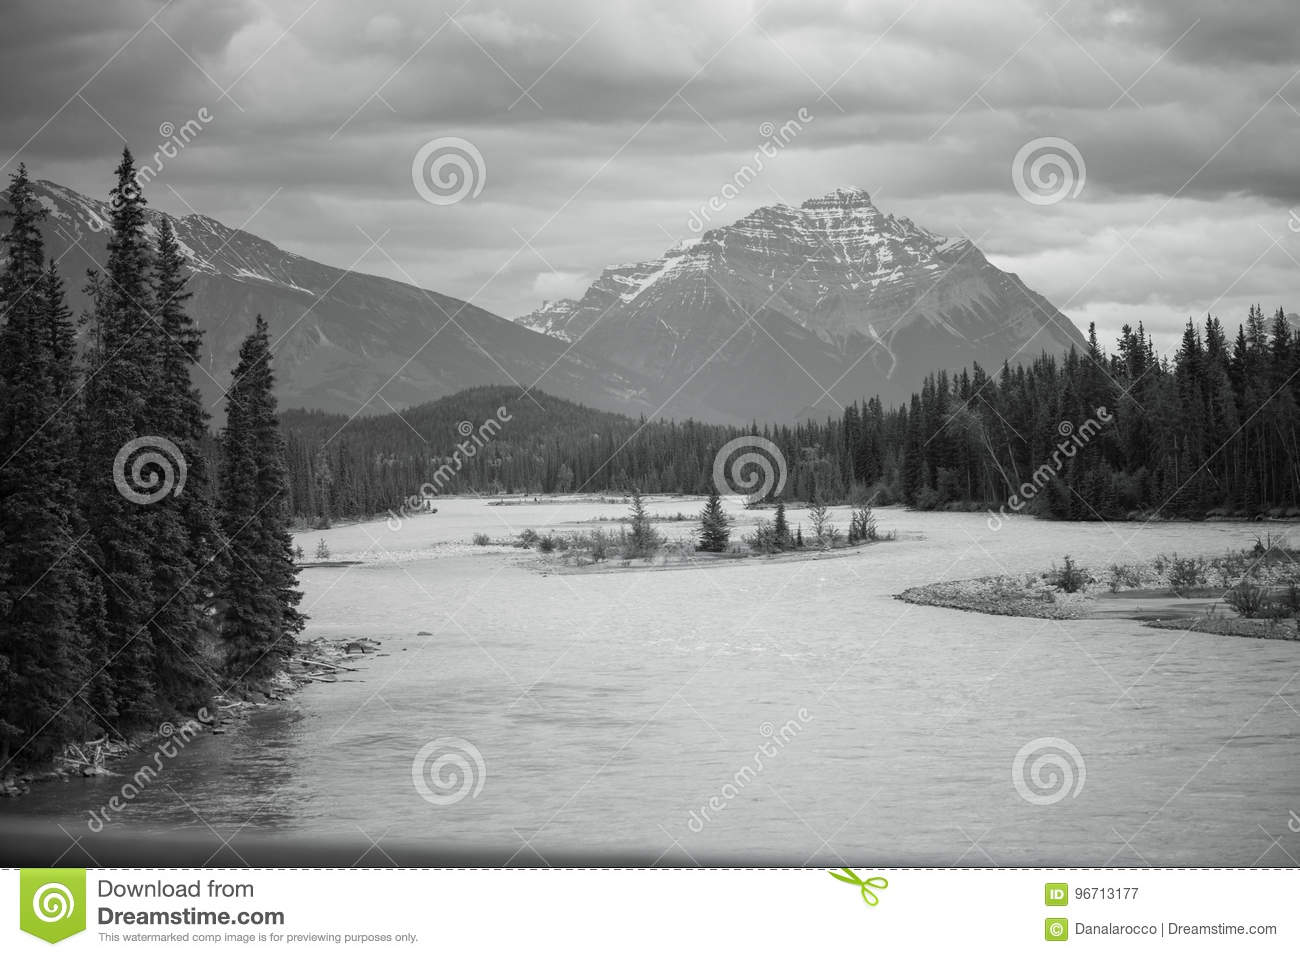 Black and white banff mountainscape with lake